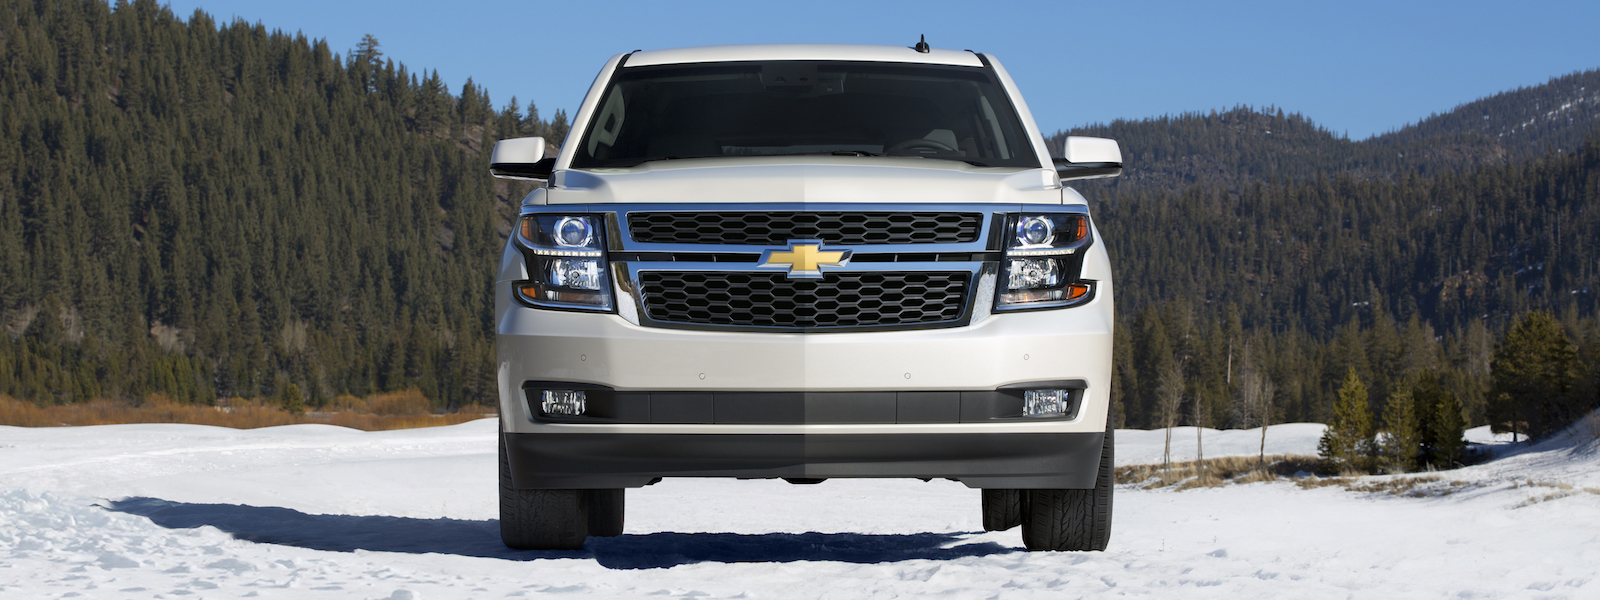 2016 Chevy Tahoe Style